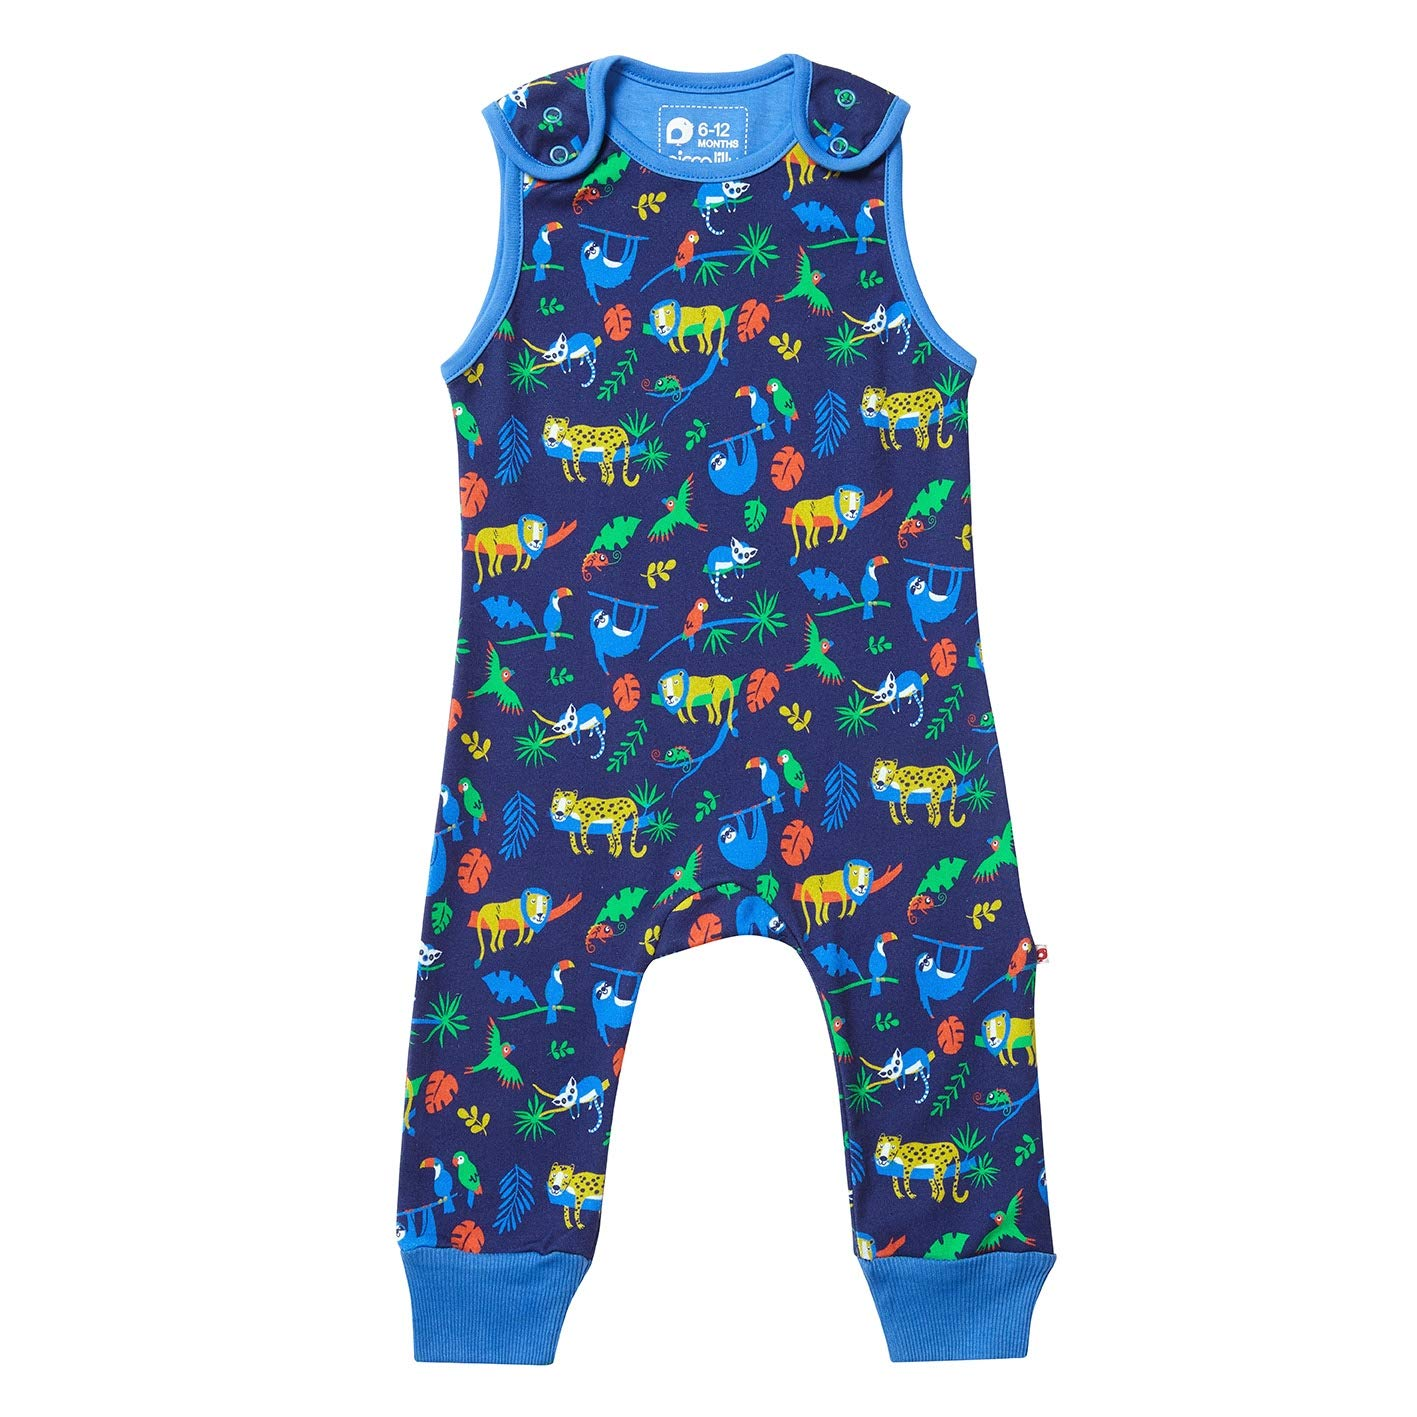 0-24 Monate Piccalilly Baby M/ädchen Overall